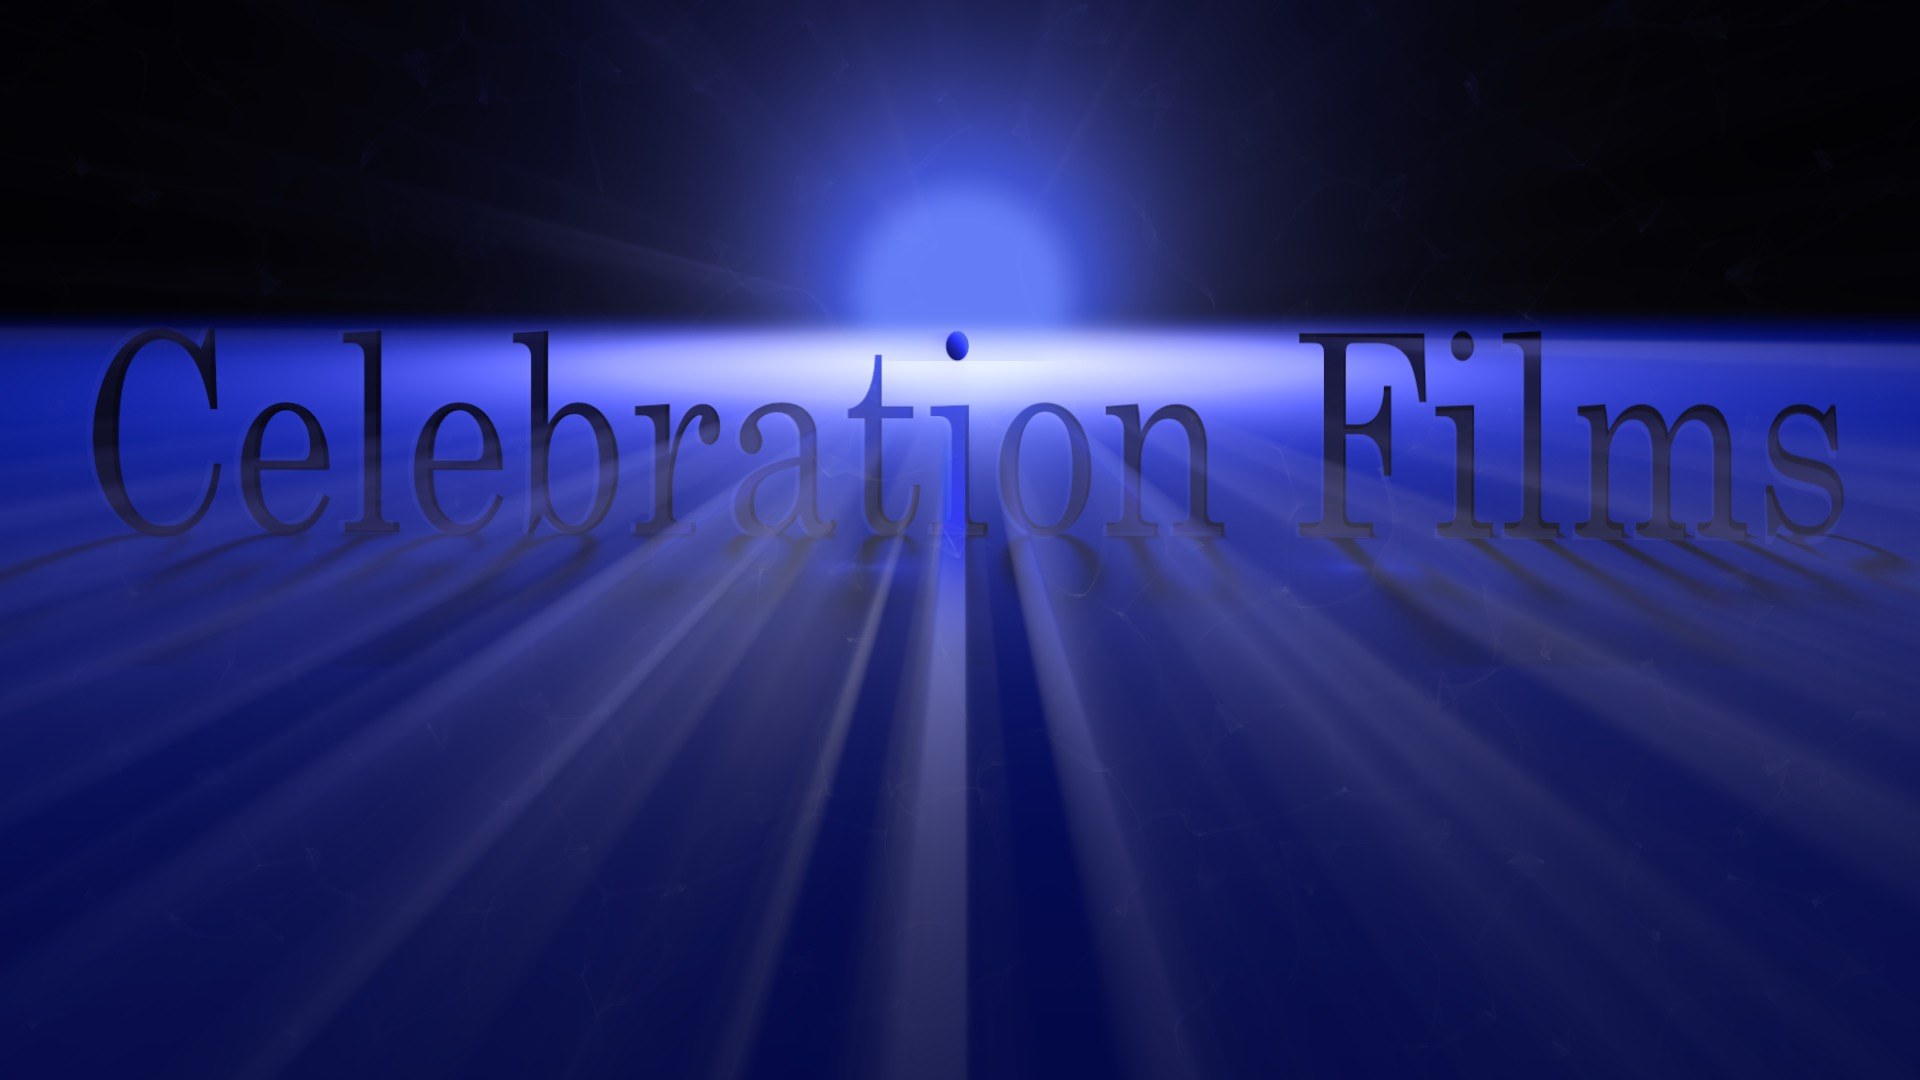 CelebrationFilms.Another Title2.jpg